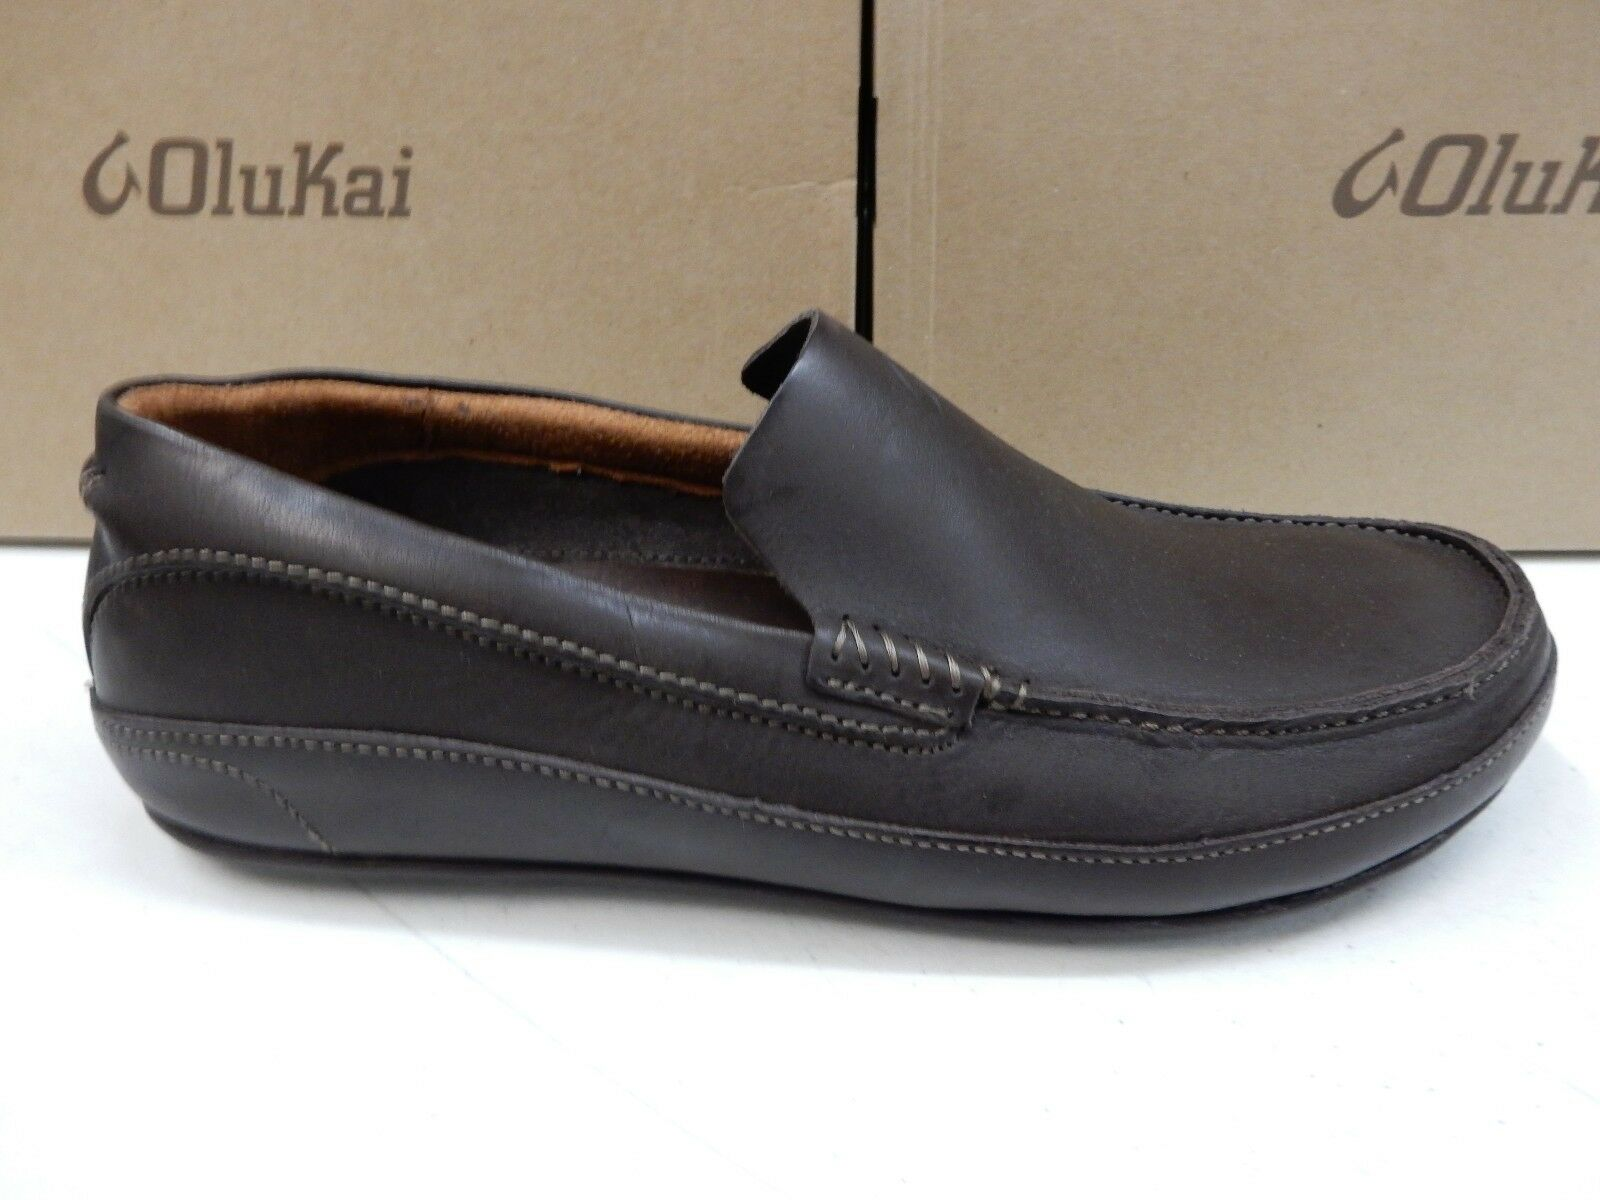 OLUKAI Uomo SHOES KULANA DARK DARK DARK WOOD SIZE 10 8bd340